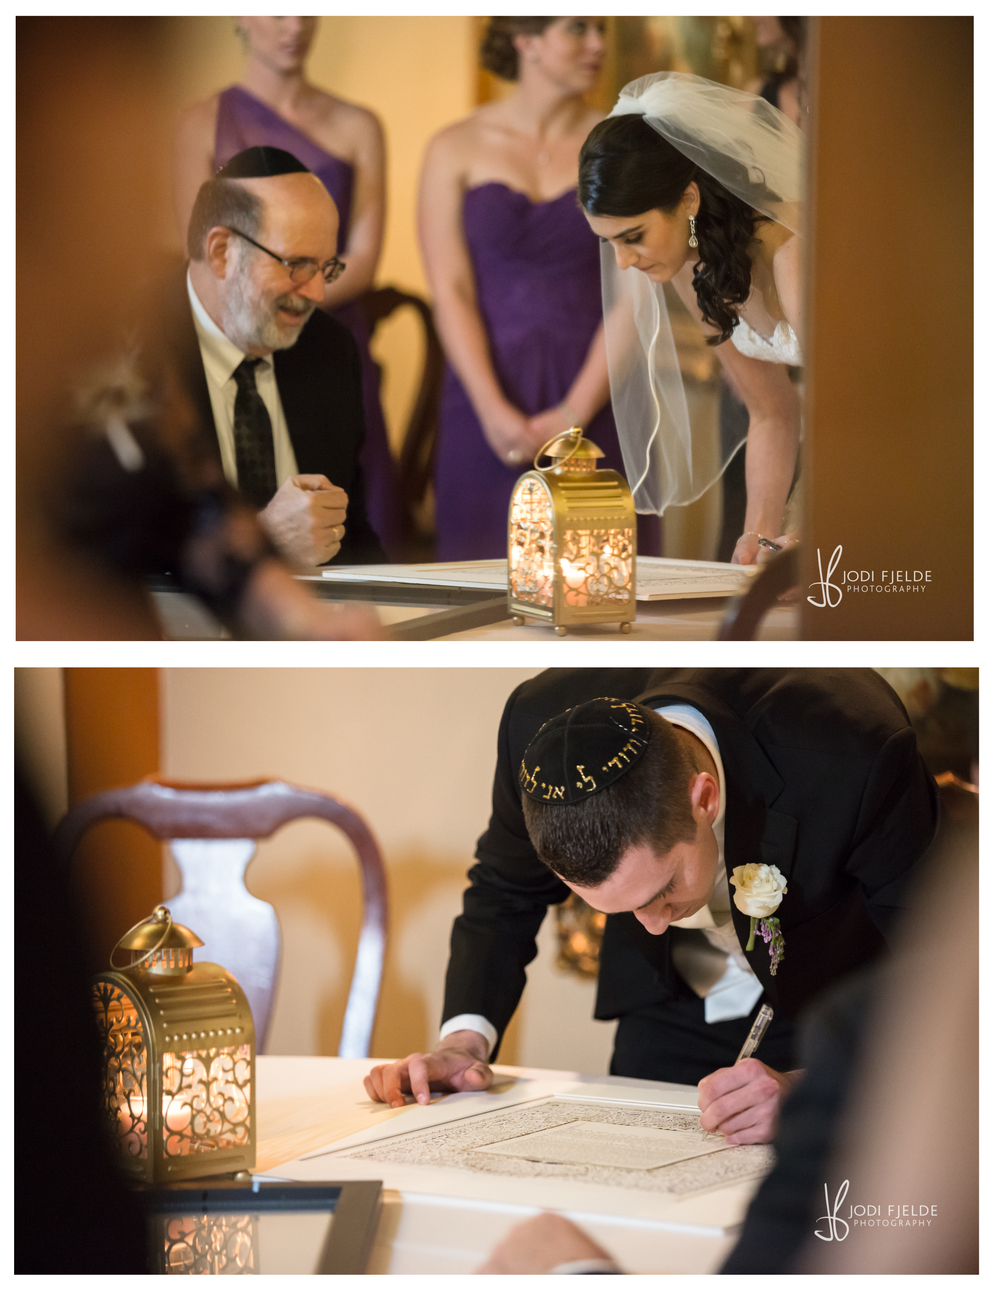 Benvenuto_Palm_Beach_Wedding_Jewish_Michelle & Jason_Jodi_Fjedle_Photography 36.jpg